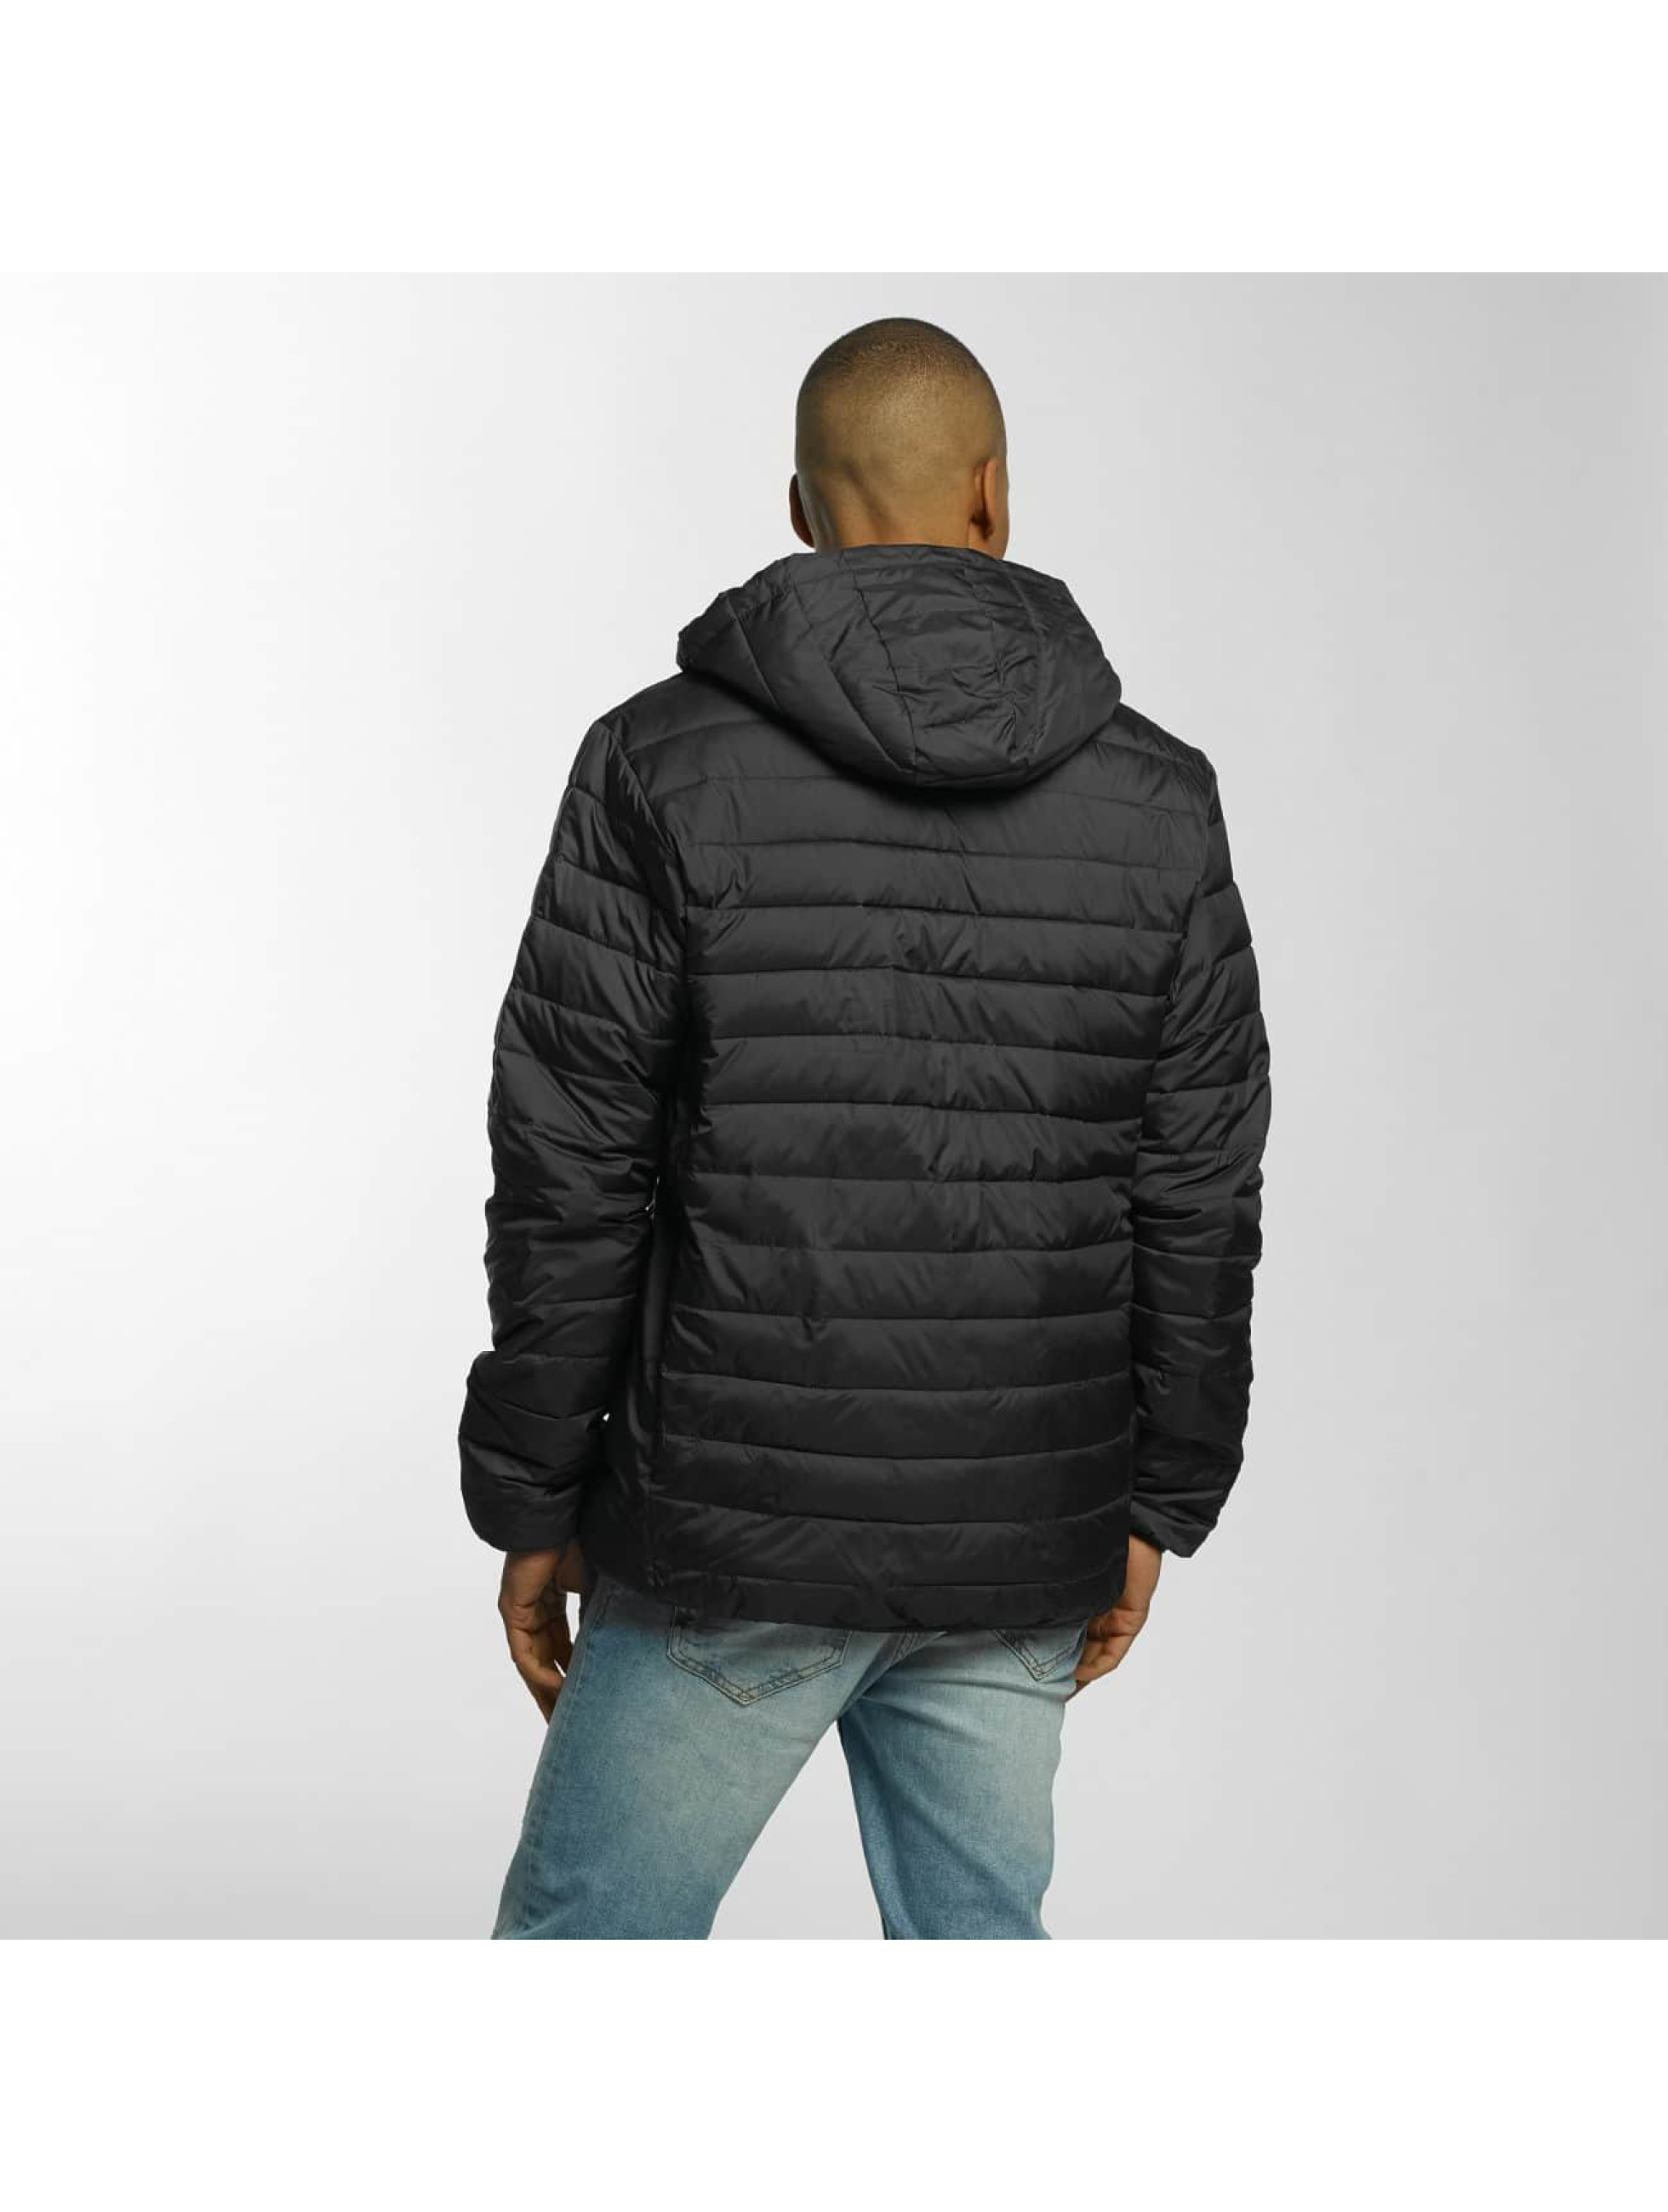 Quiksilver Winter Jacket Everyday Scaly black